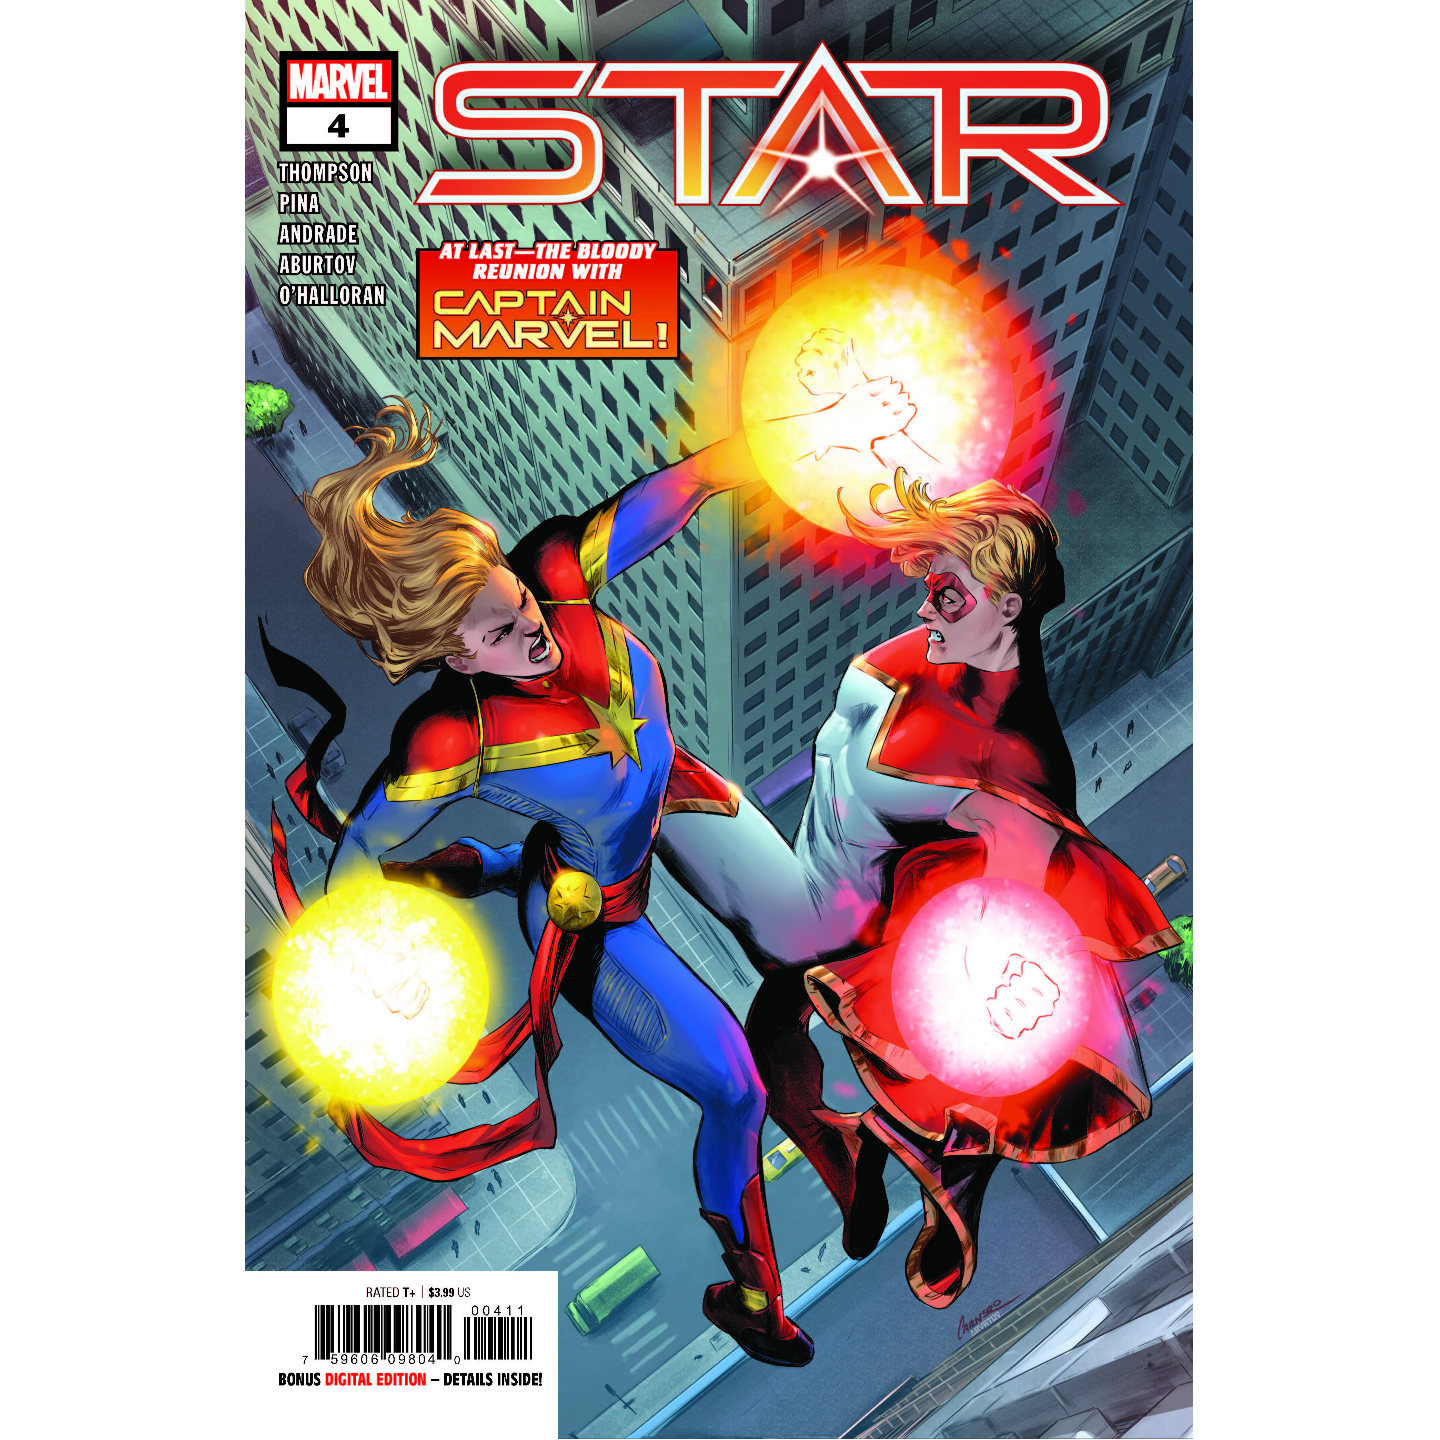 STAR #4 (OF 5)